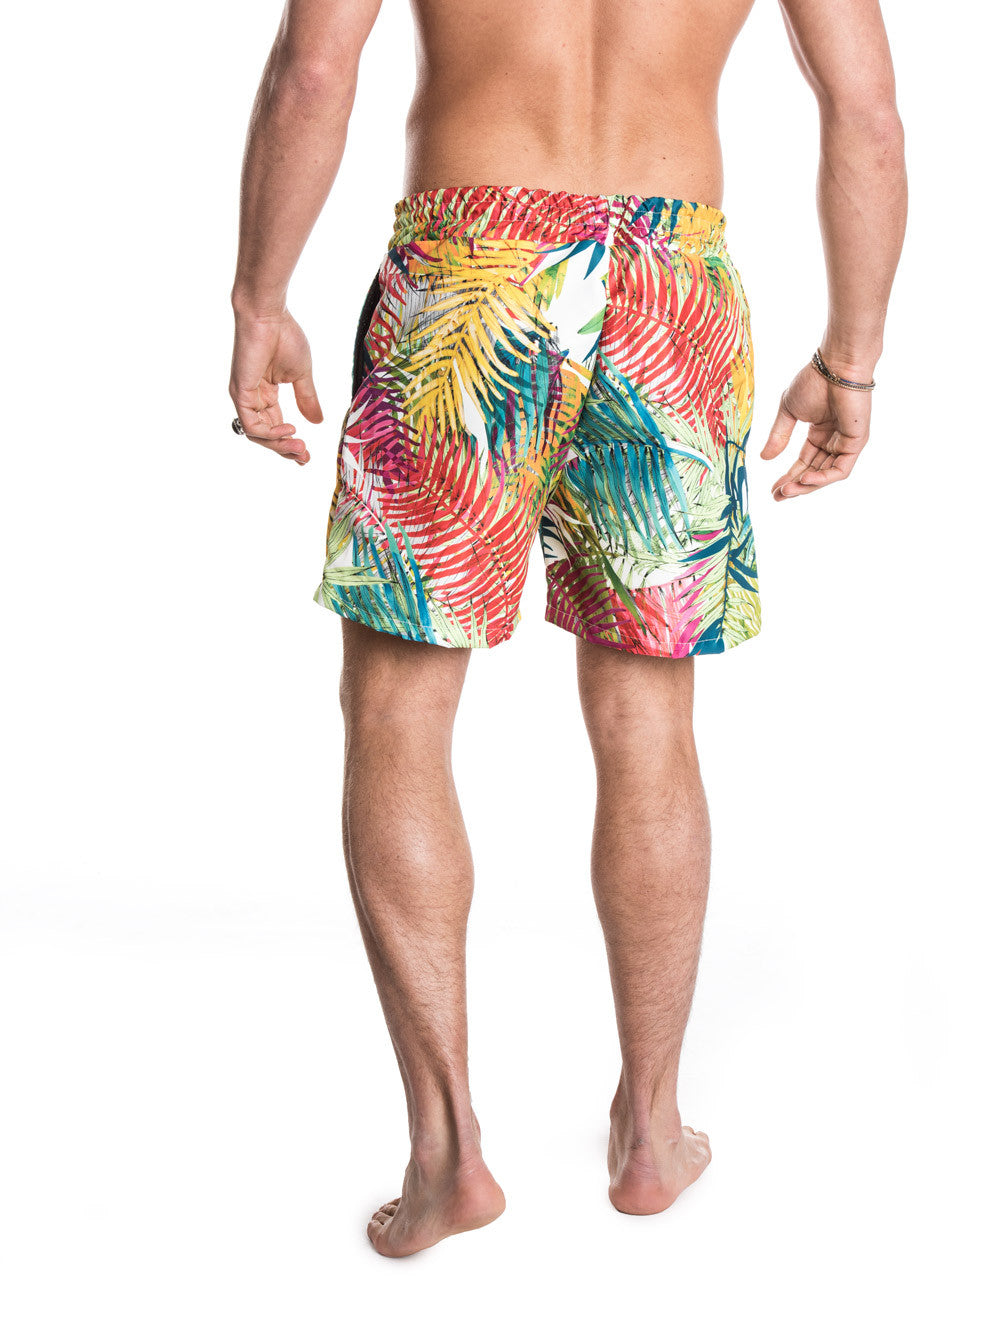 MEN'S CLOTHING | BOTTOMS | SWIMWEAR | PALMS SWIM PANTS | SWIM SHORTS | ALL-OVER PRINT | MULTICOLOUR | TECHNICAL FABRIC | ELASTICATED DRAWSTRING WAISTBAND | MESH LINING | MID LENGTH | SIDE POCKETS | POLYESTER | #SUMMERVIBES | NOHOW